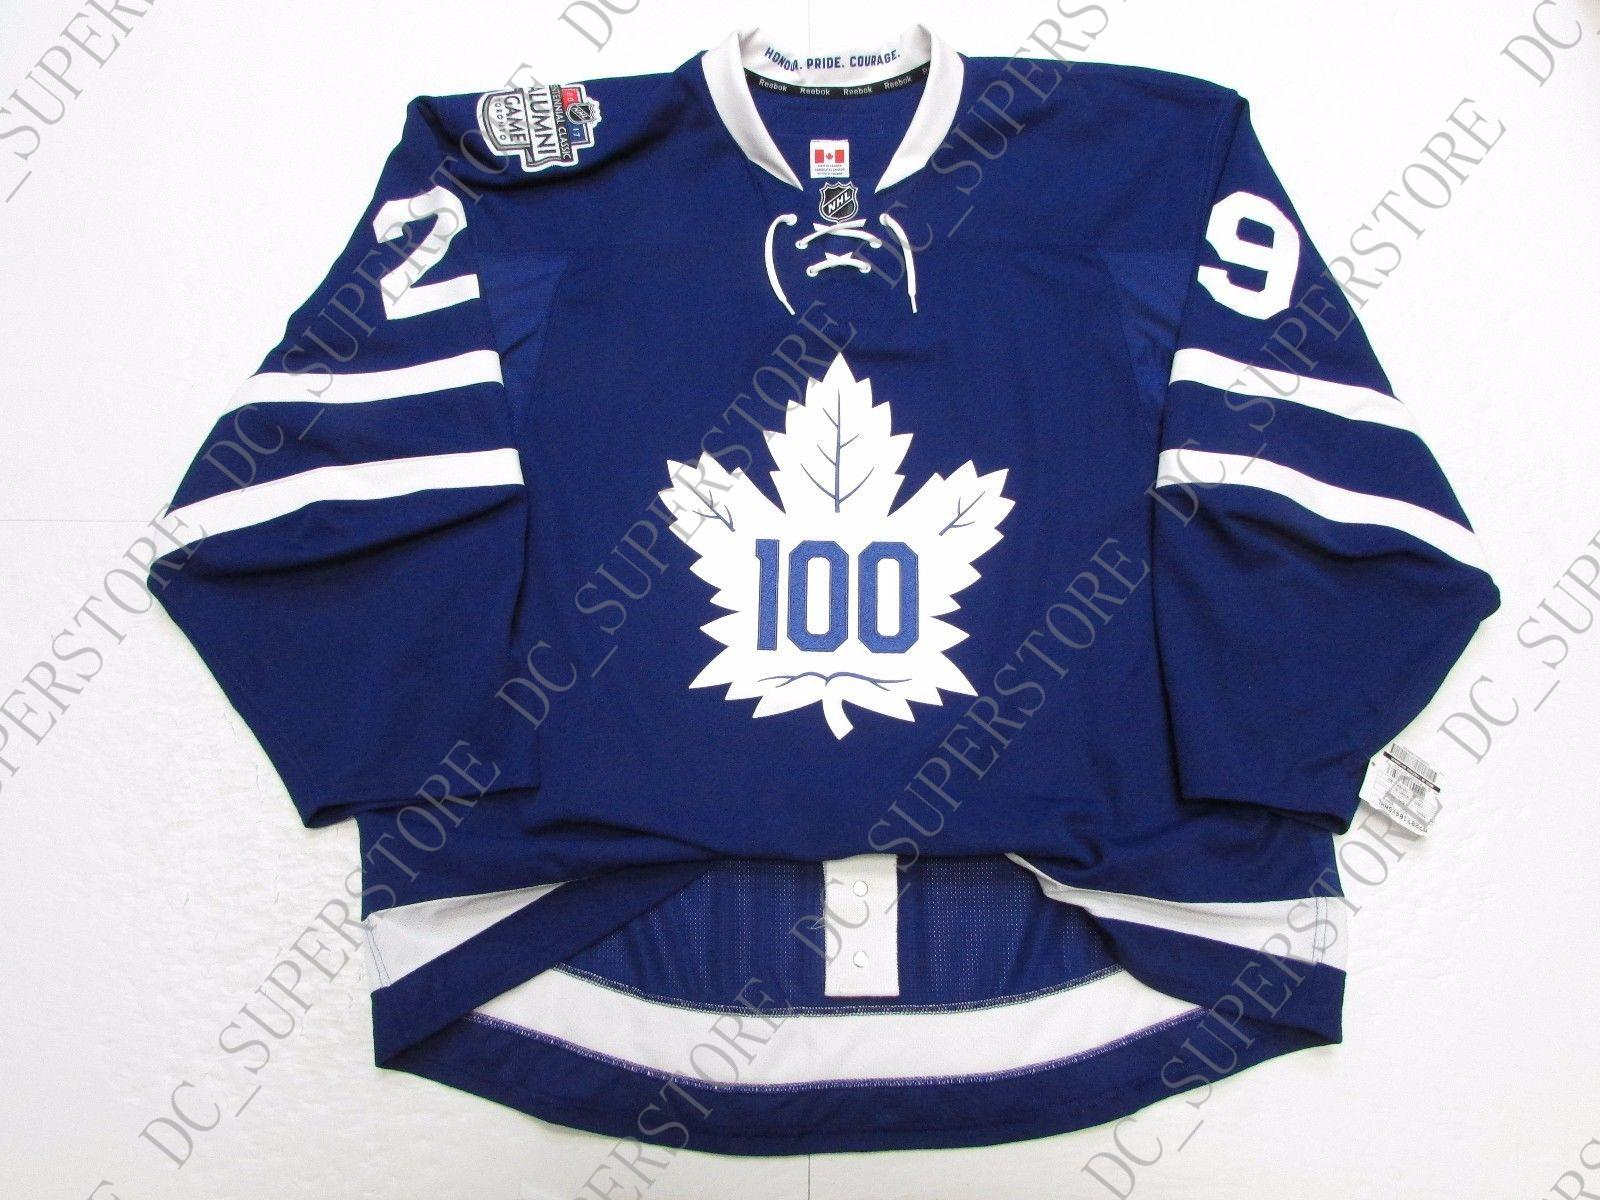 8ee1215af 2019 Cheap Custom POTVIN TORONTO MAPLE LEAFS CENTENNIAL CLASSIC ALUMNI  JERSEY Stitch Add Any Number Any Name Mens Hockey Jersey XS 5XL From  Dc_superstore, ...